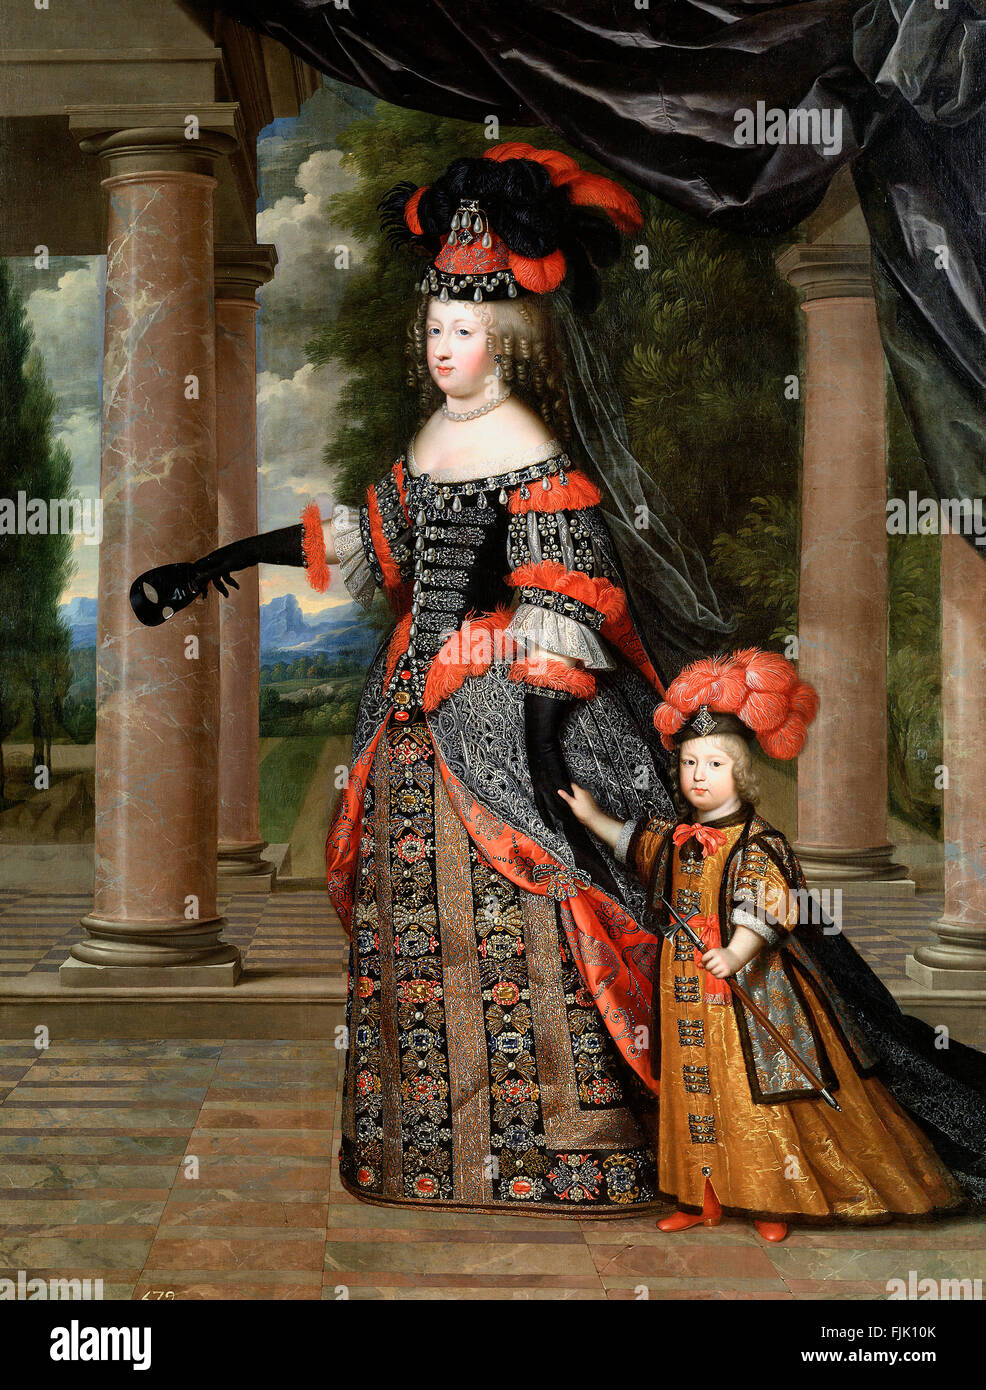 Queen Marie Thérèse and her son the Dauphin of France, dated circa 1663 by Charles Beaubrun - Stock Image